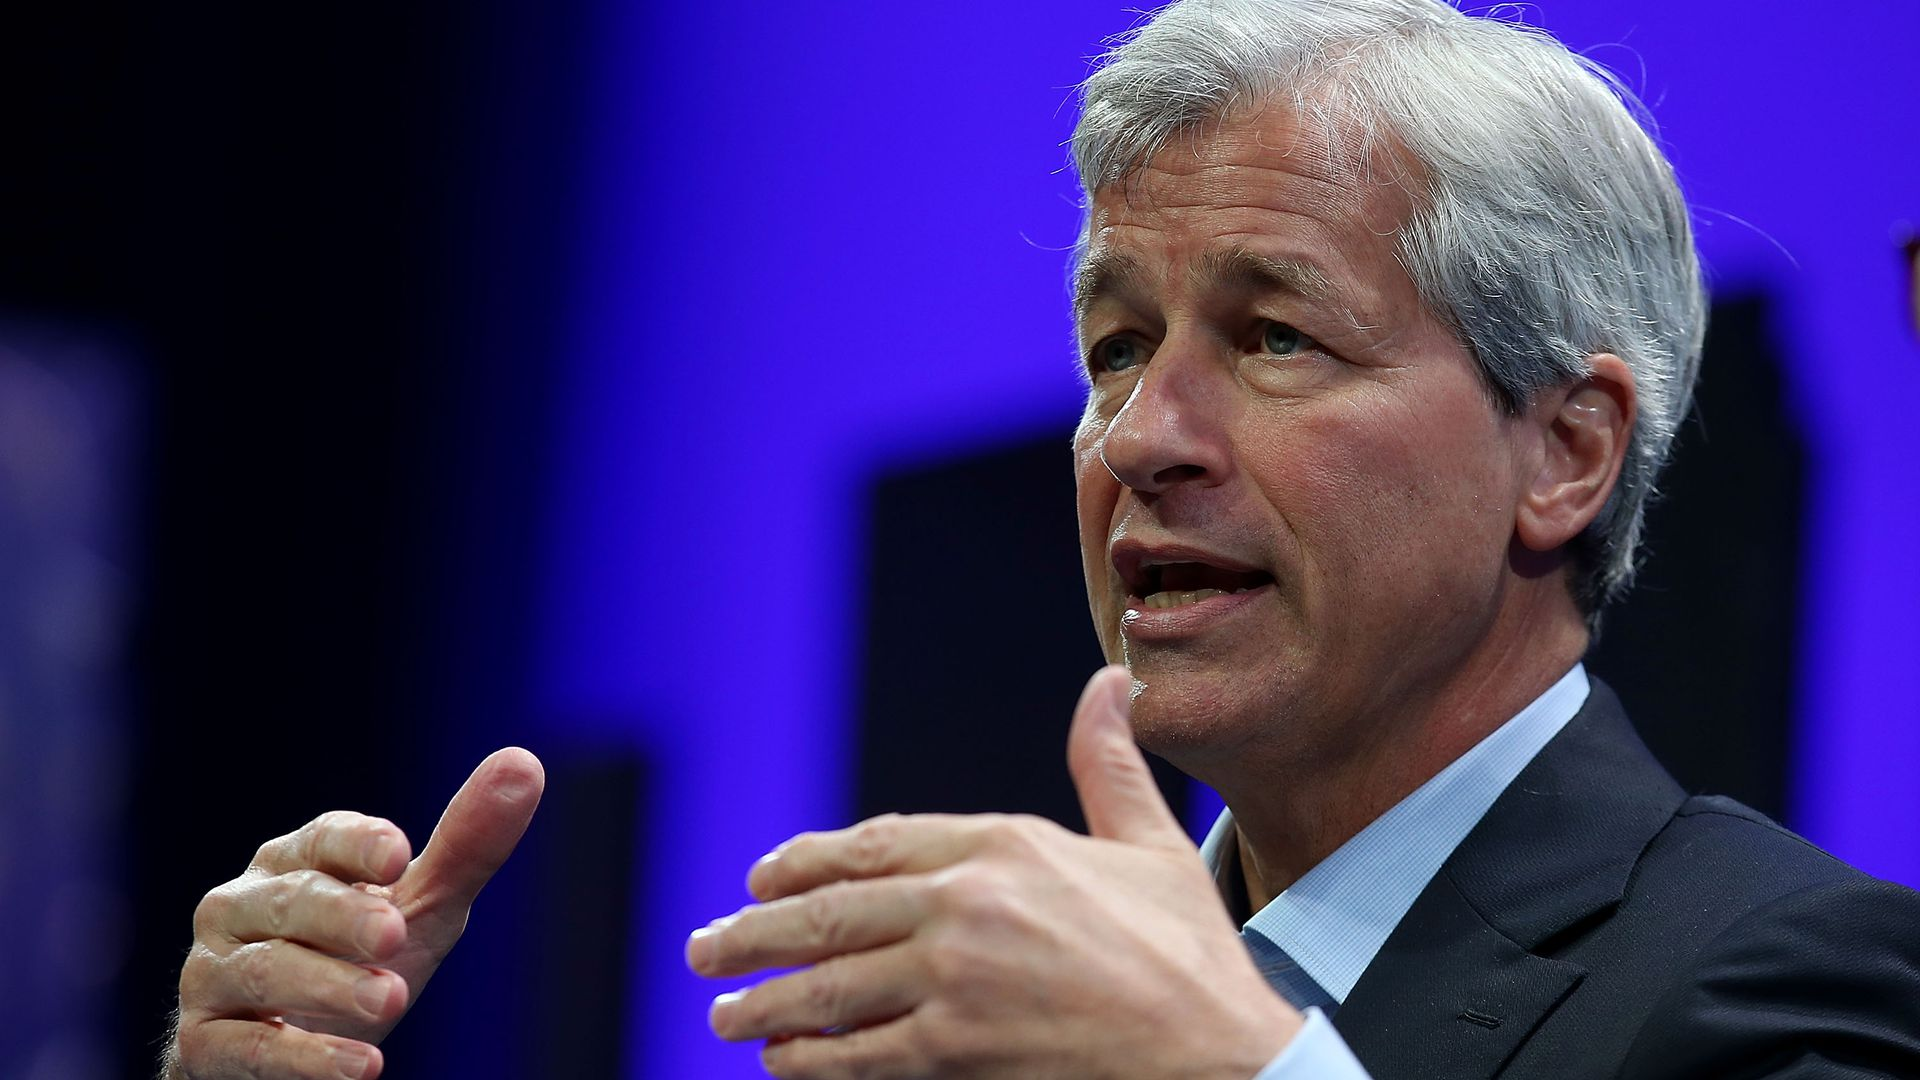 J.P. Morgan CEO Jamie Dimon gesturing in front of a crowd.